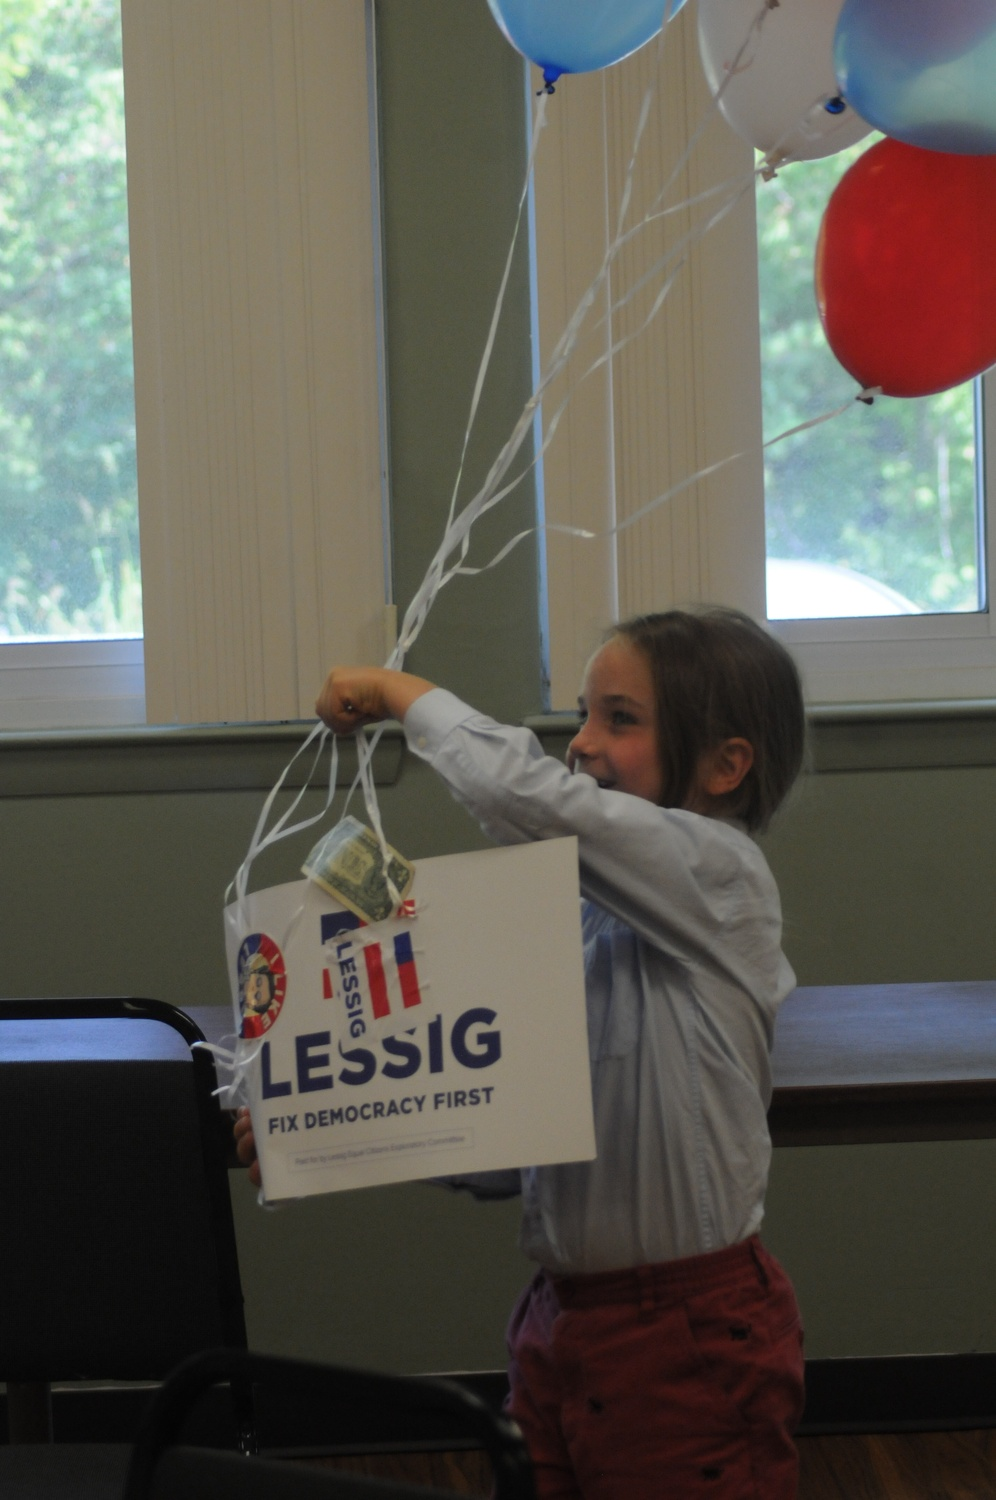 Campaigning for Lessig